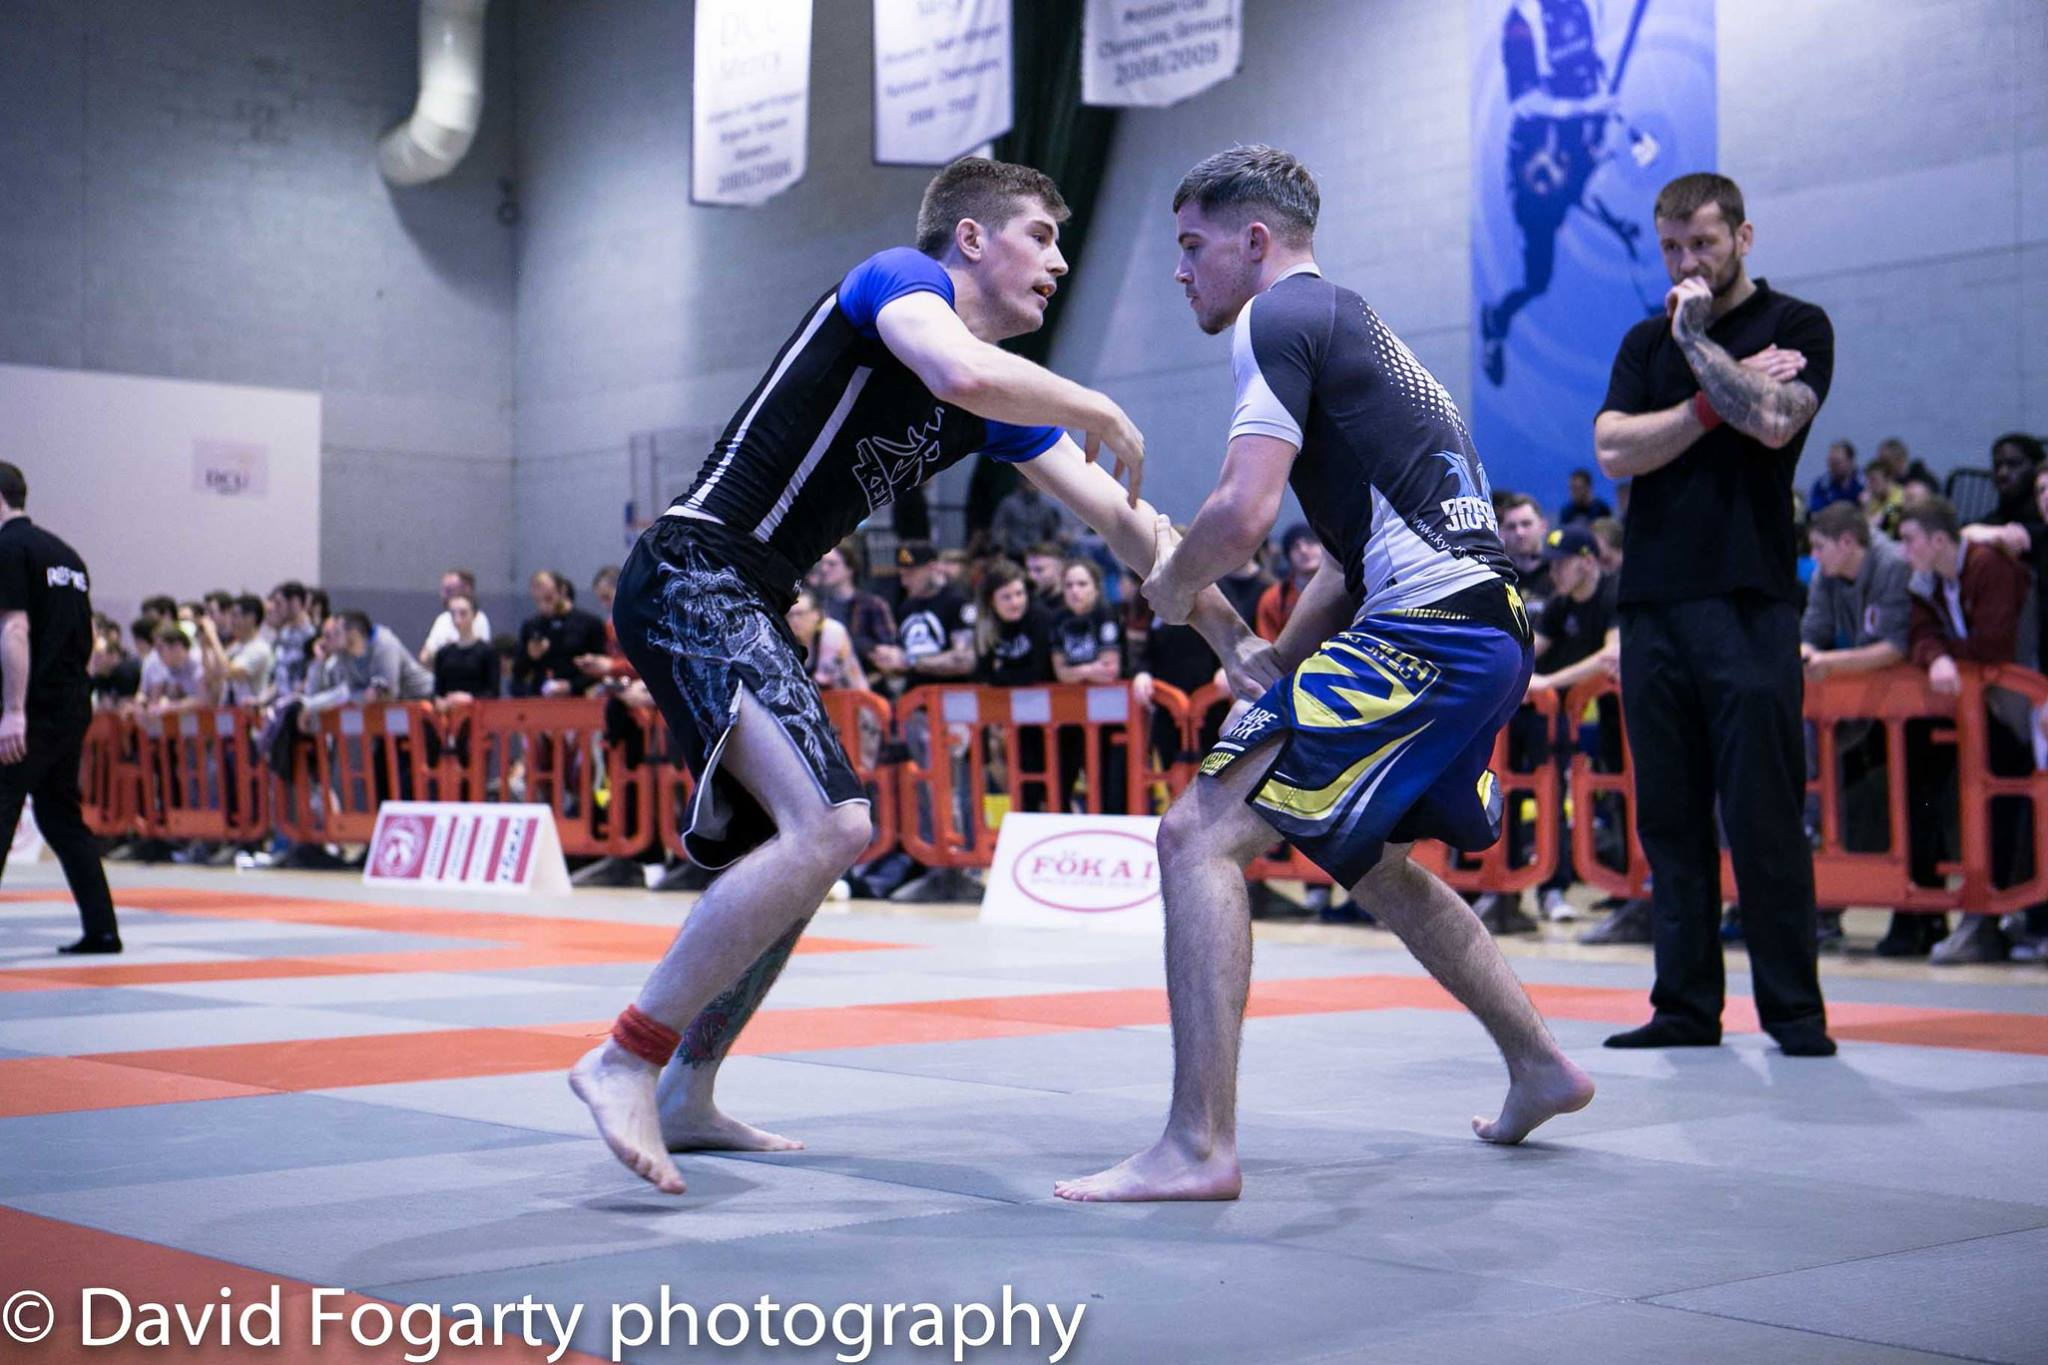 Nathan Kelly (R) works an armdrag from standing against his opponent at The Irish Open Nogi 2015 -3/10/2015 (photo credit David Fogarty Photography)